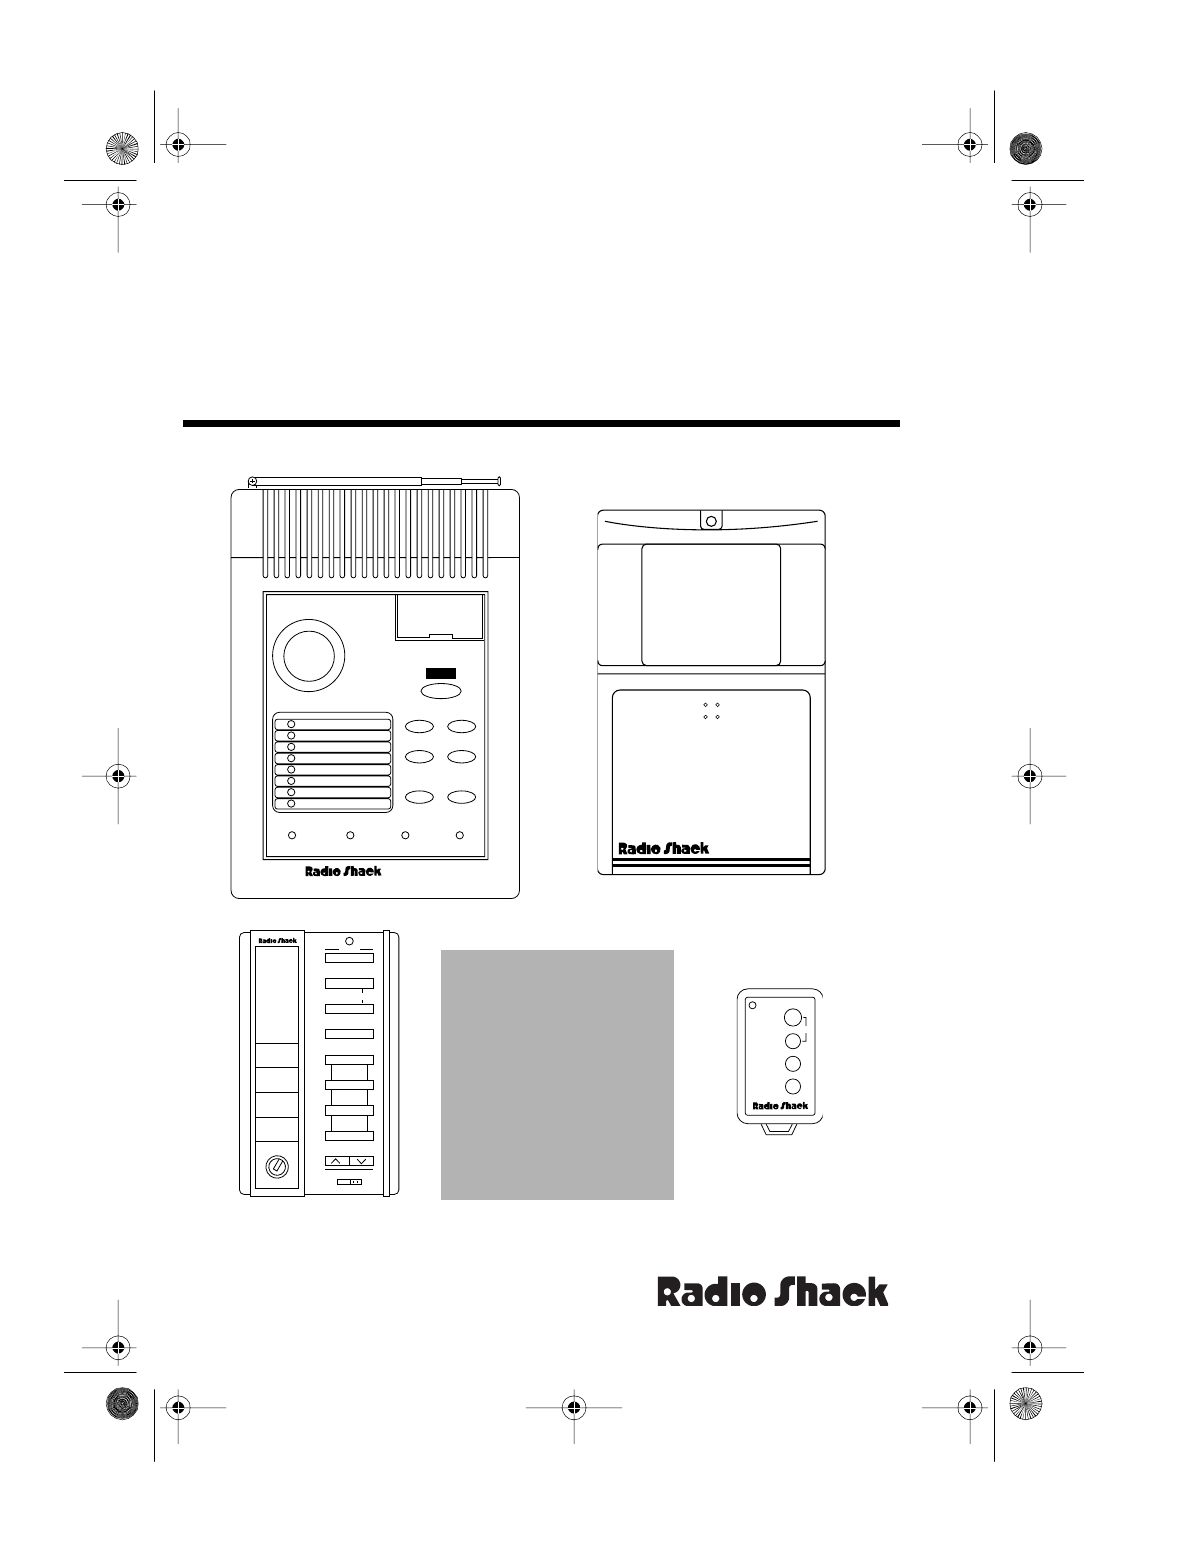 Radio Shack Home Security System 5000 User Guide